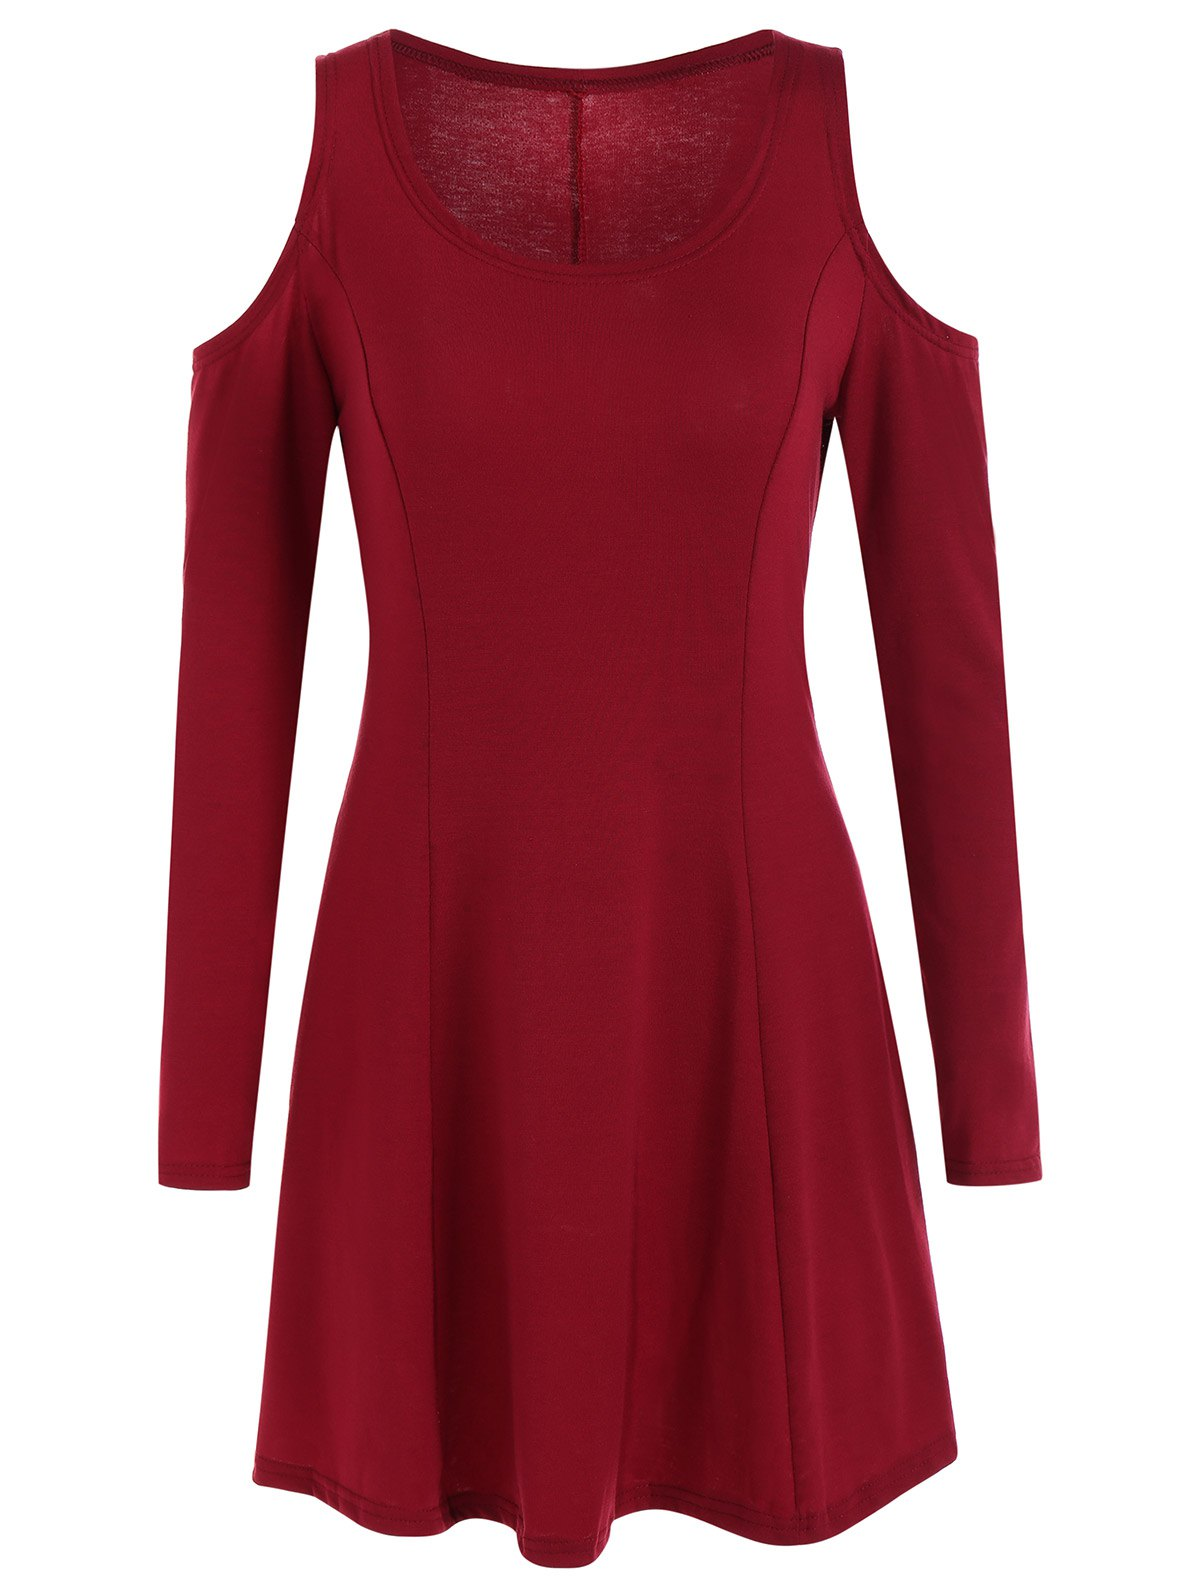 Long Sleeve Cold Shoulder Dress - DEEP RED M